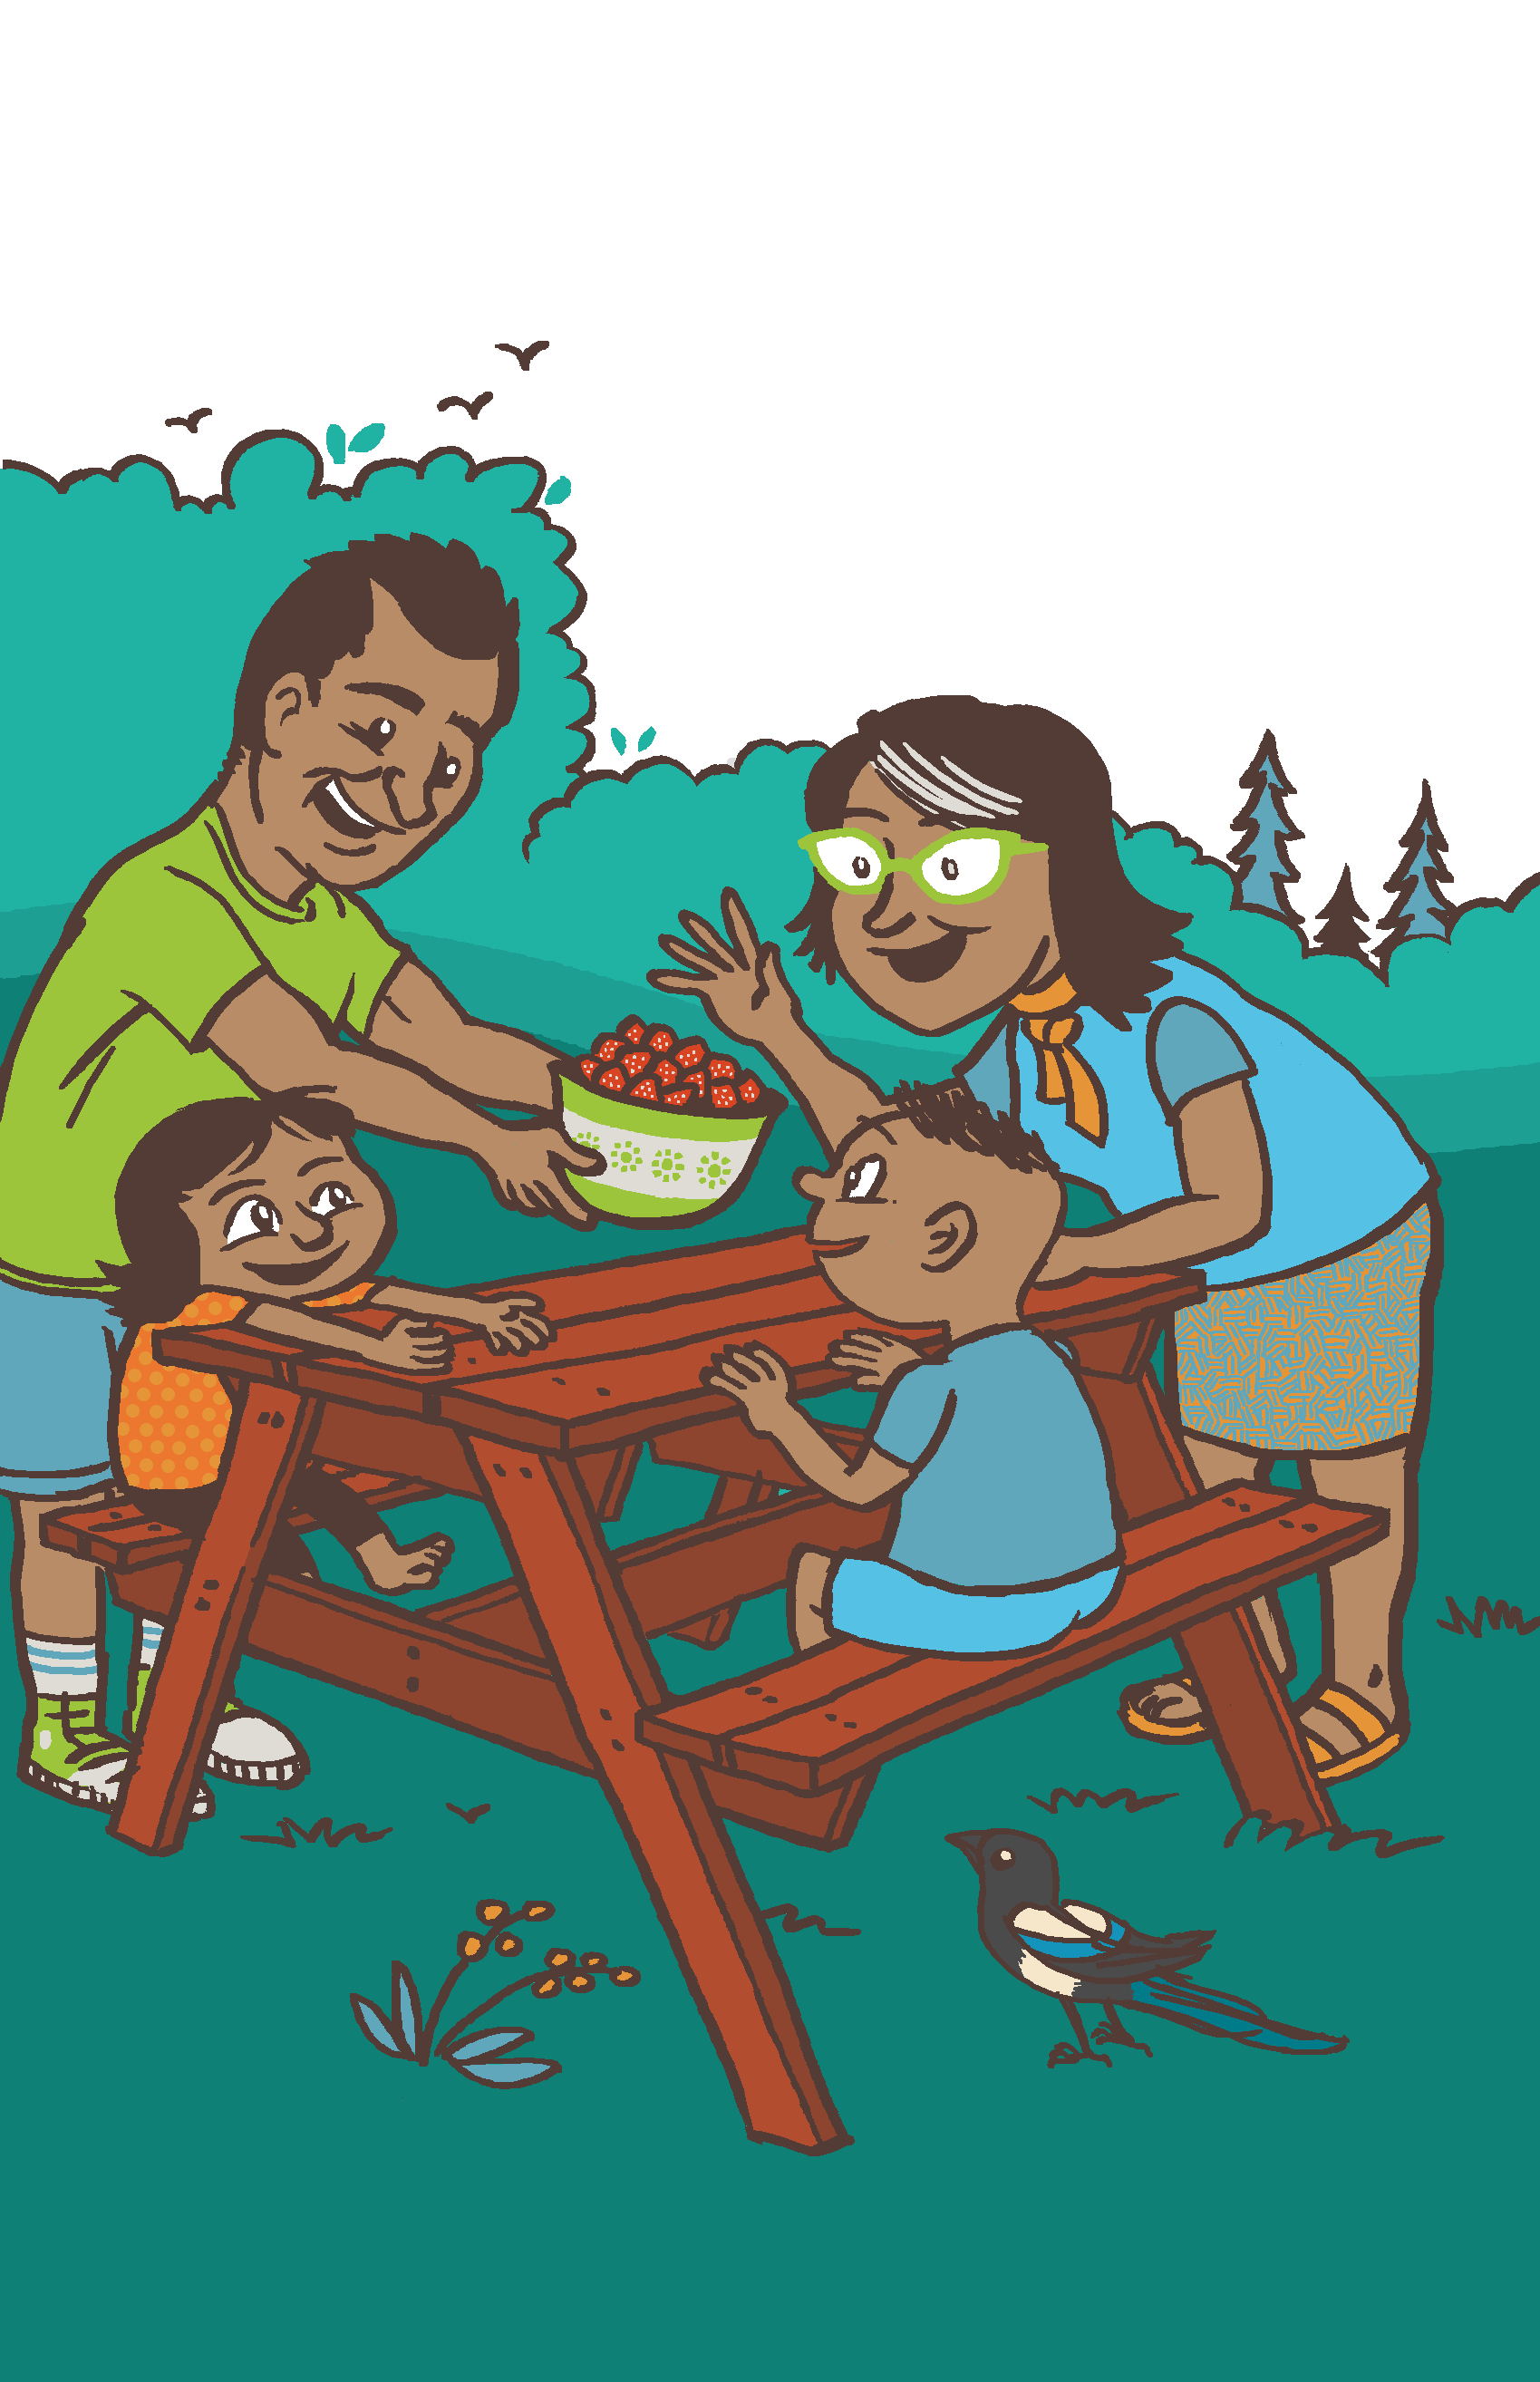 Meal Time Family Time Illustration, 2016  City of Lethbridge